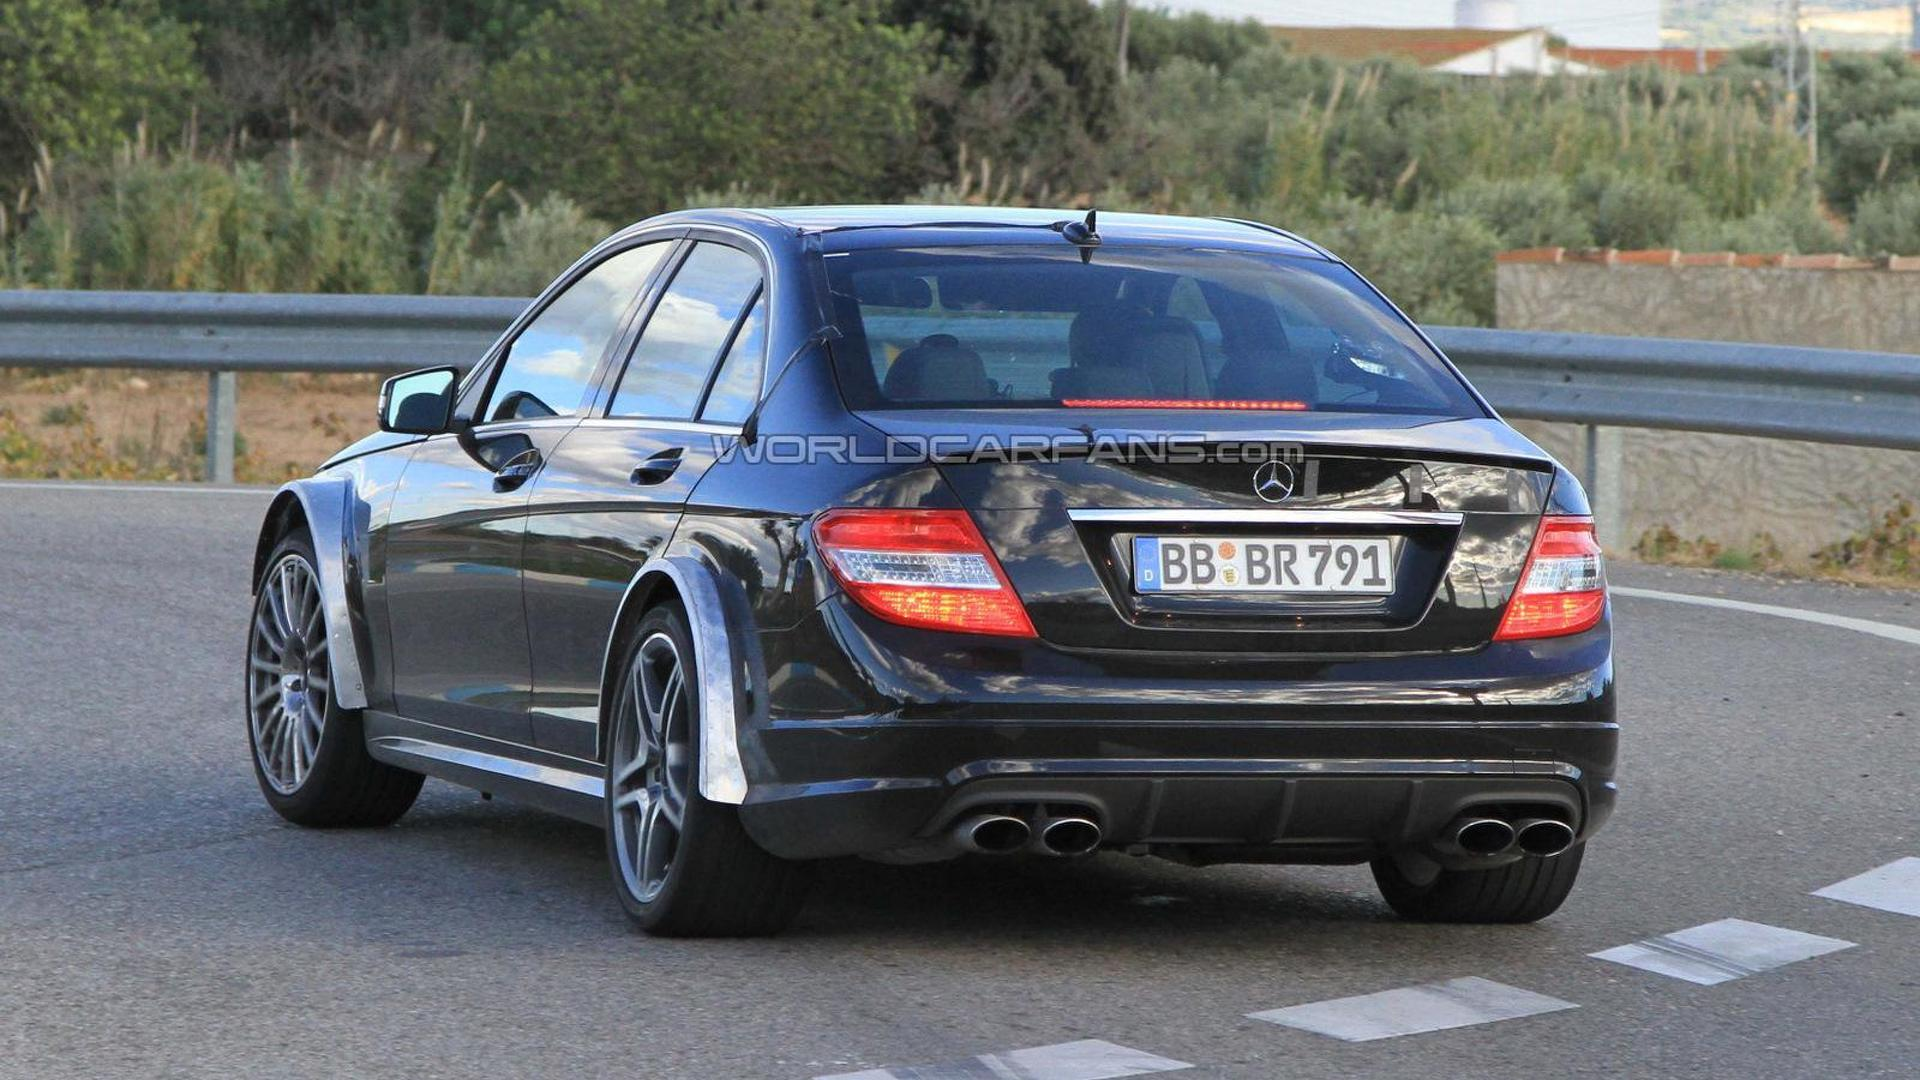 2012 Mercedes C-Class Black Series spied